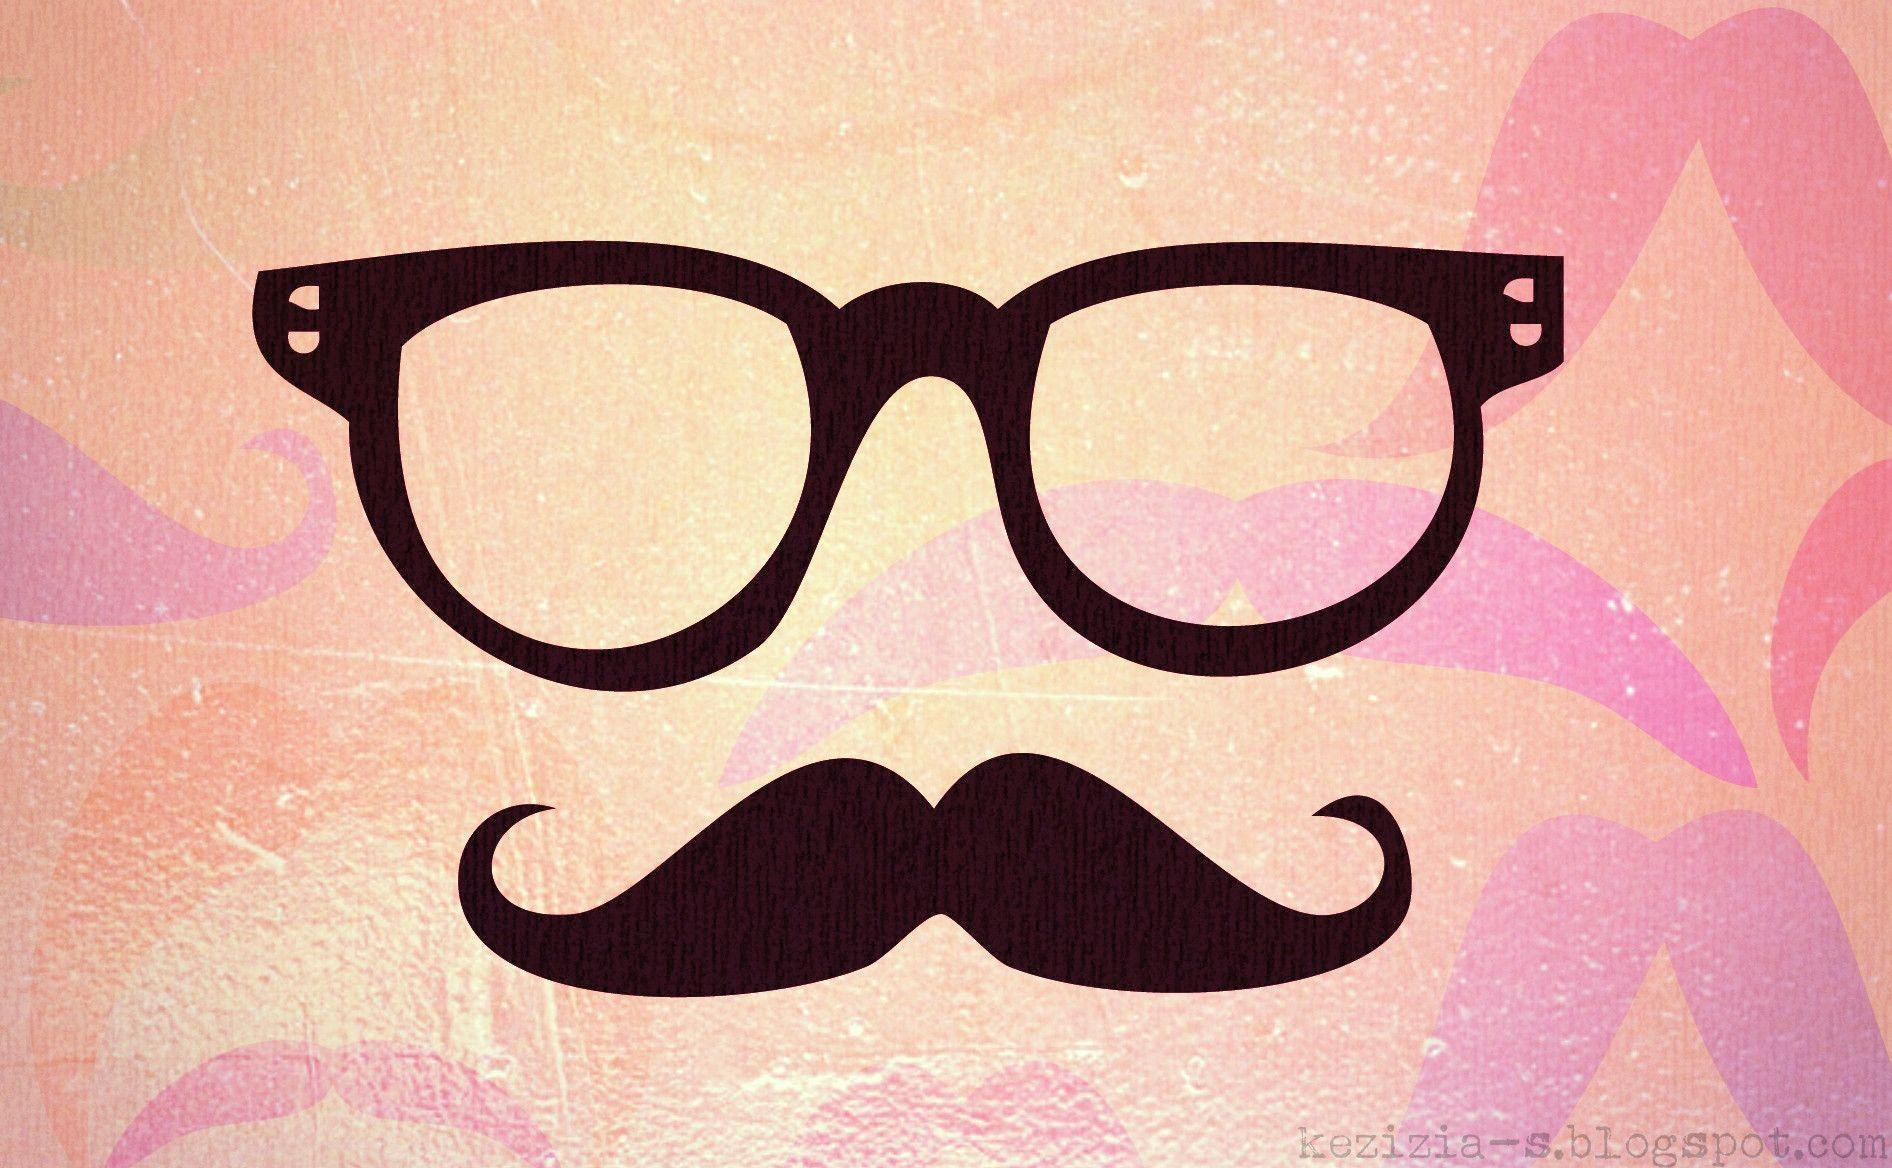 Love Wallpaper Twitter : Mustache Desktop Backgrounds - Wallpaper cave